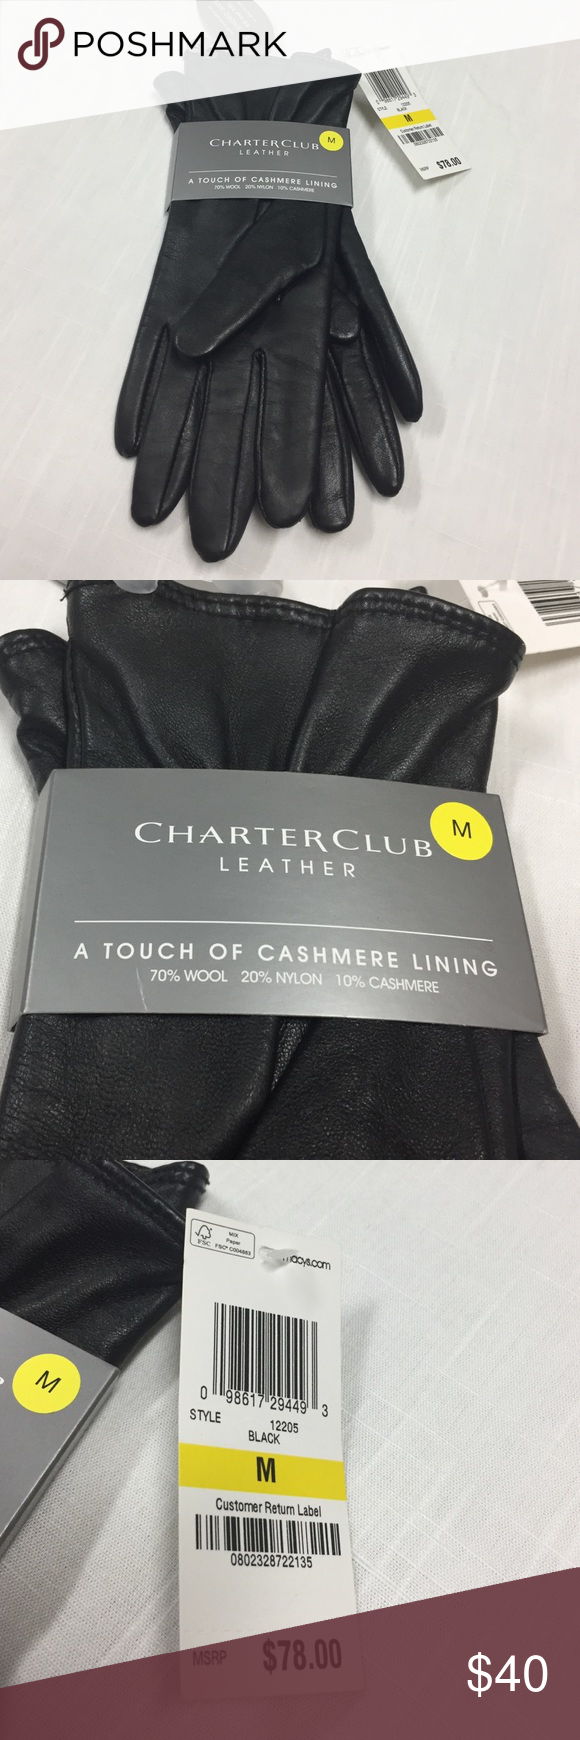 Black leather gloves small - Black Leather Gloves Lined With Cashmere Brand New Pair Of Soft Leather Gloves Lined With